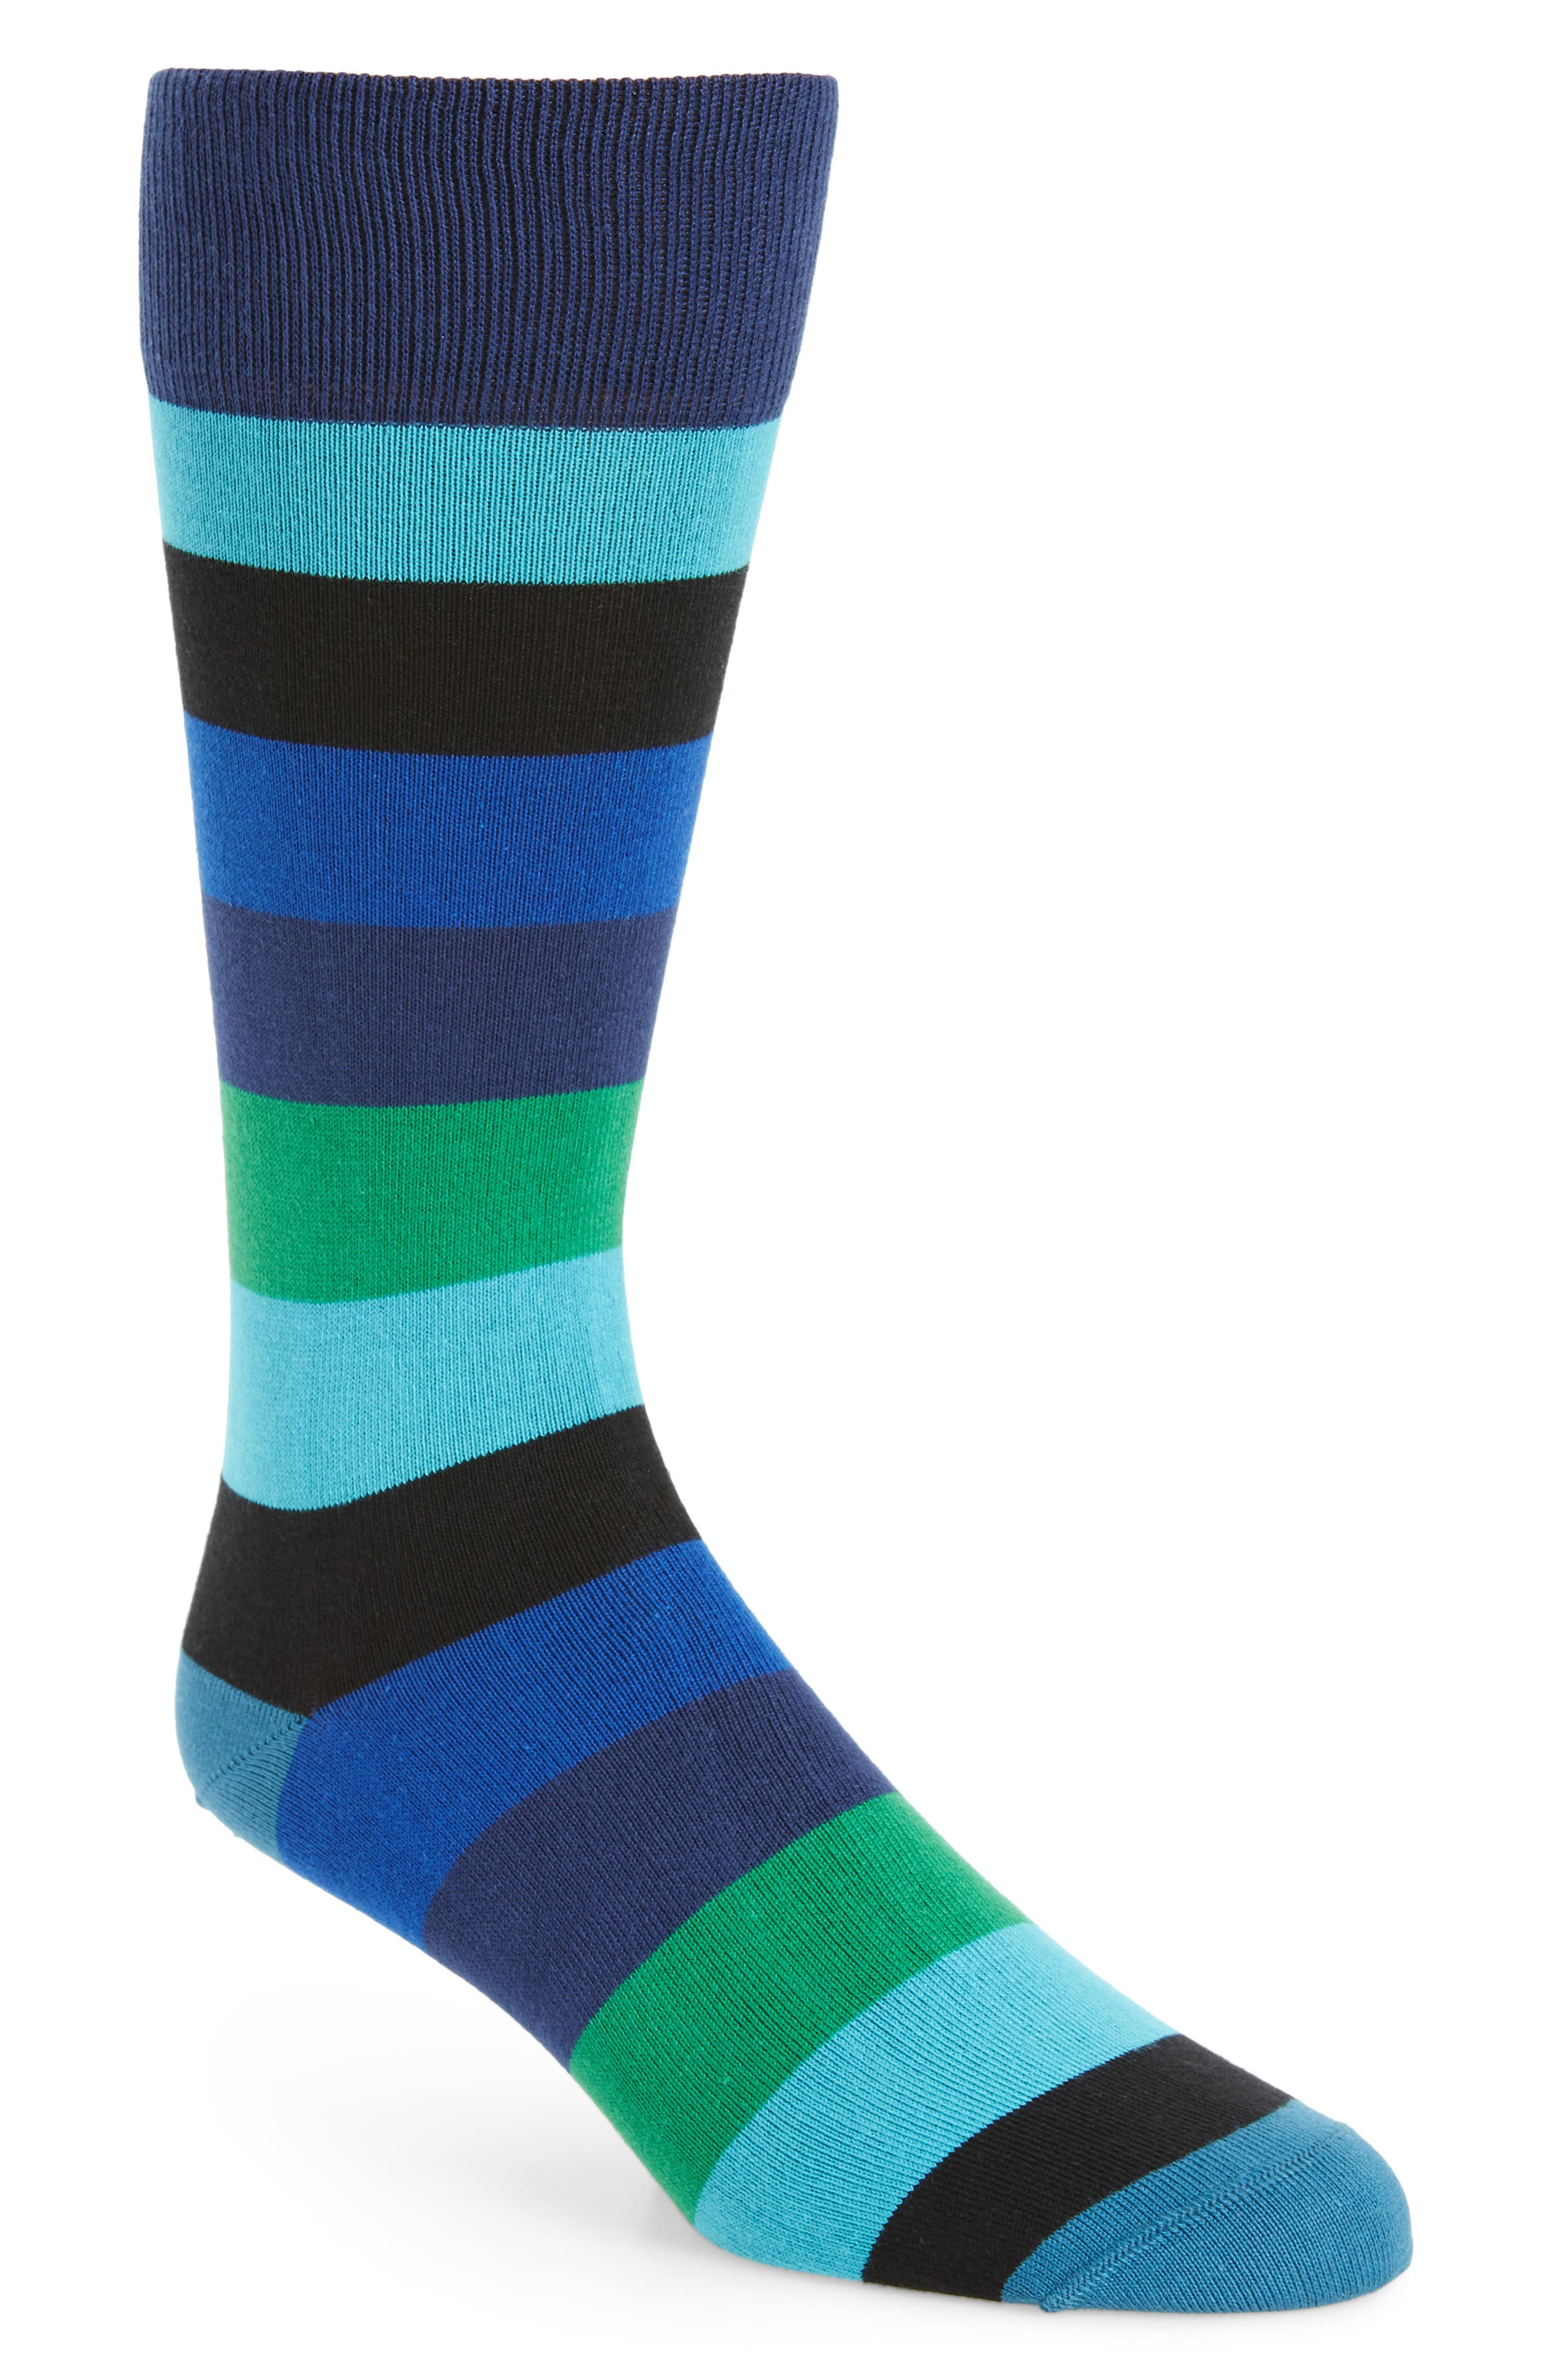 Buxton Stripe Socks,                             Main thumbnail 1, color,                             Blue/ Green Multi